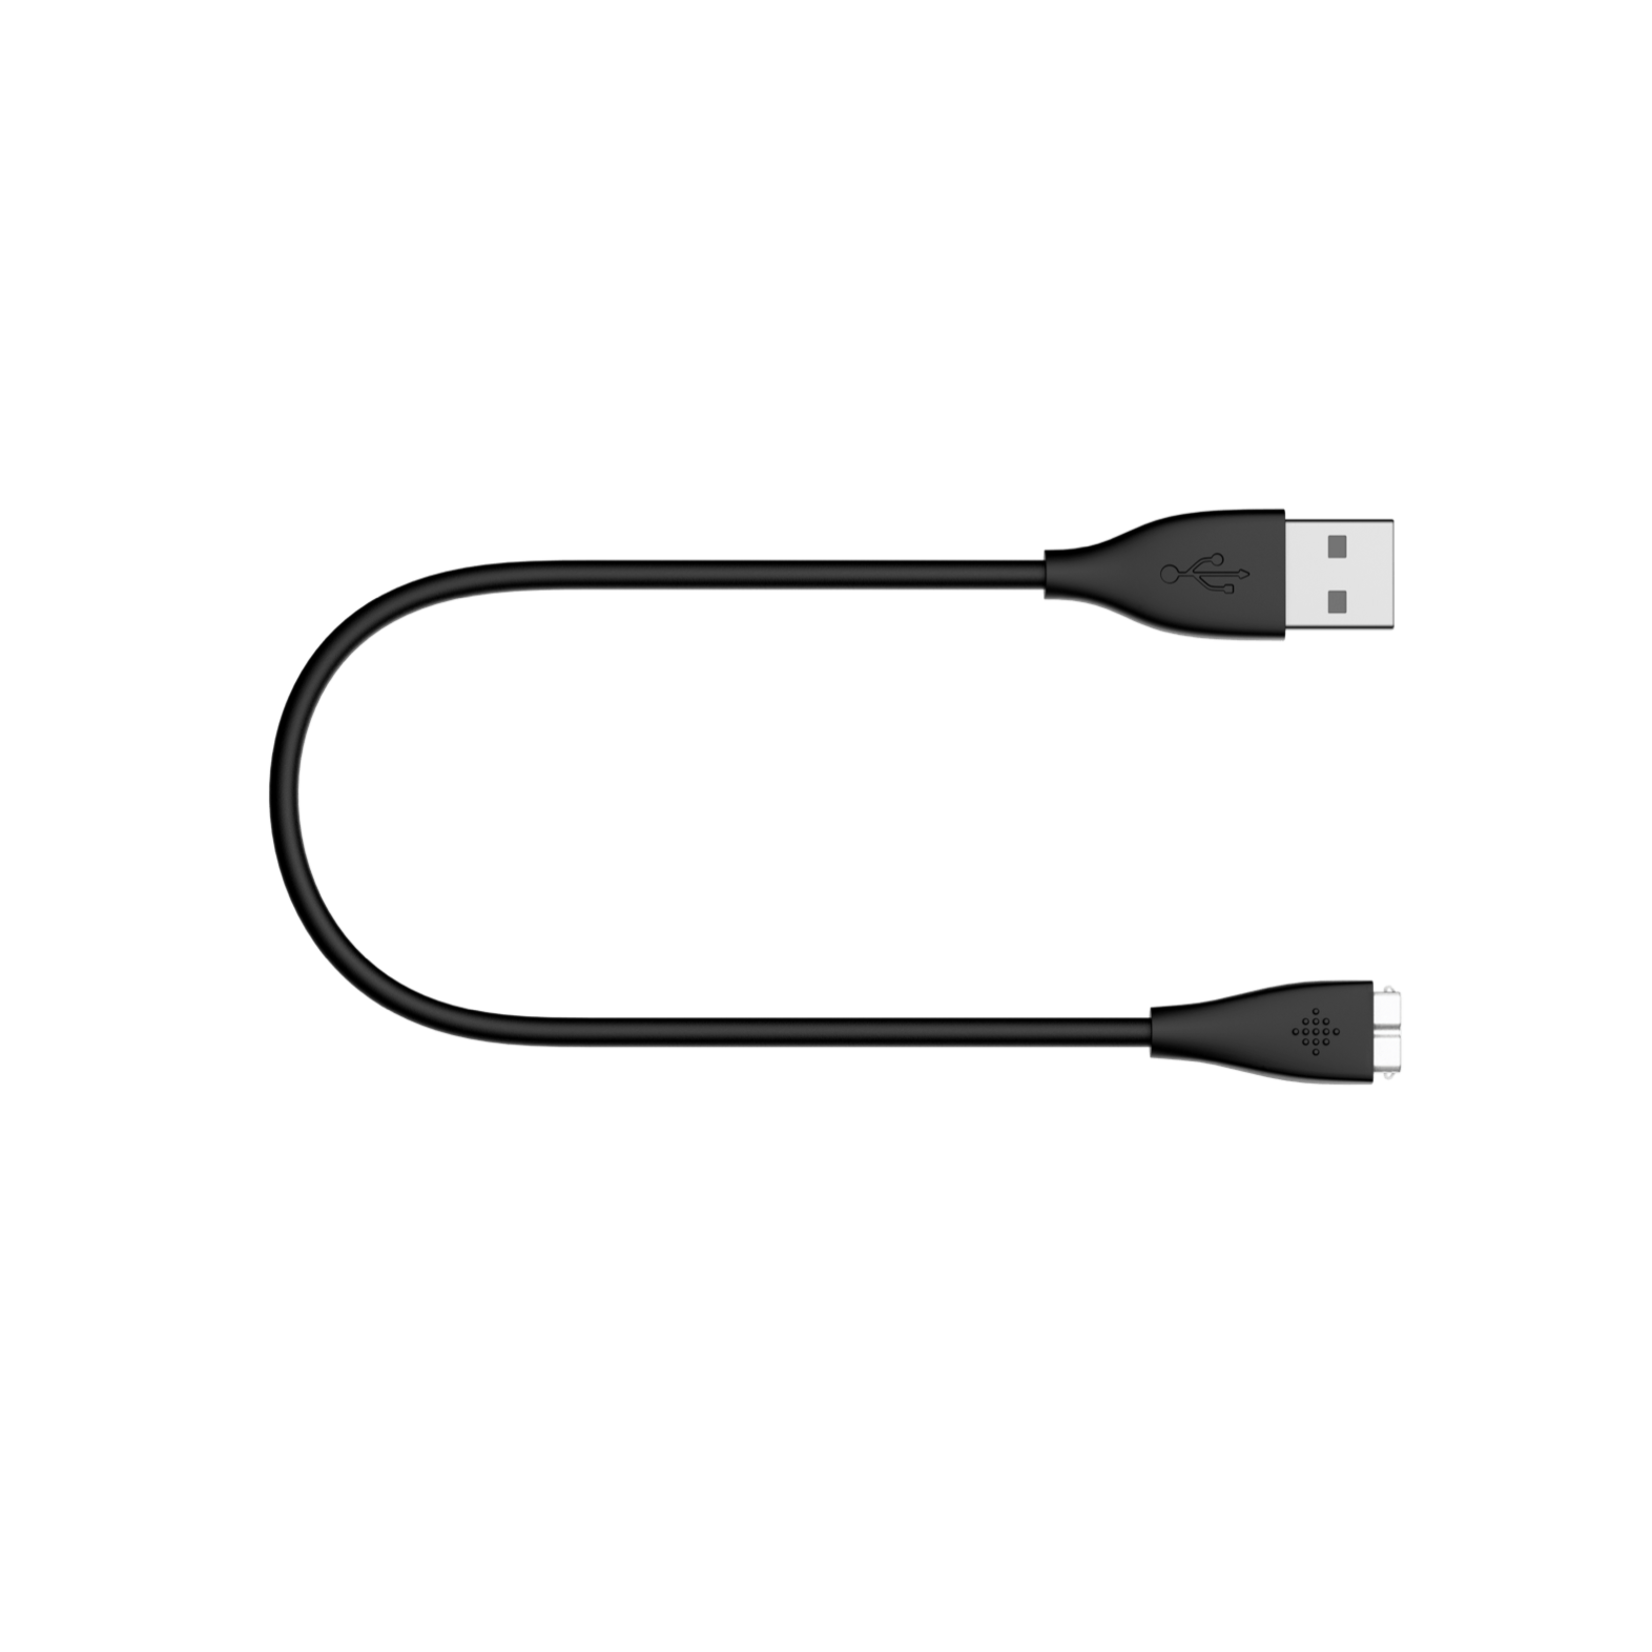 Fitbit Charge HR USB Charging Cable